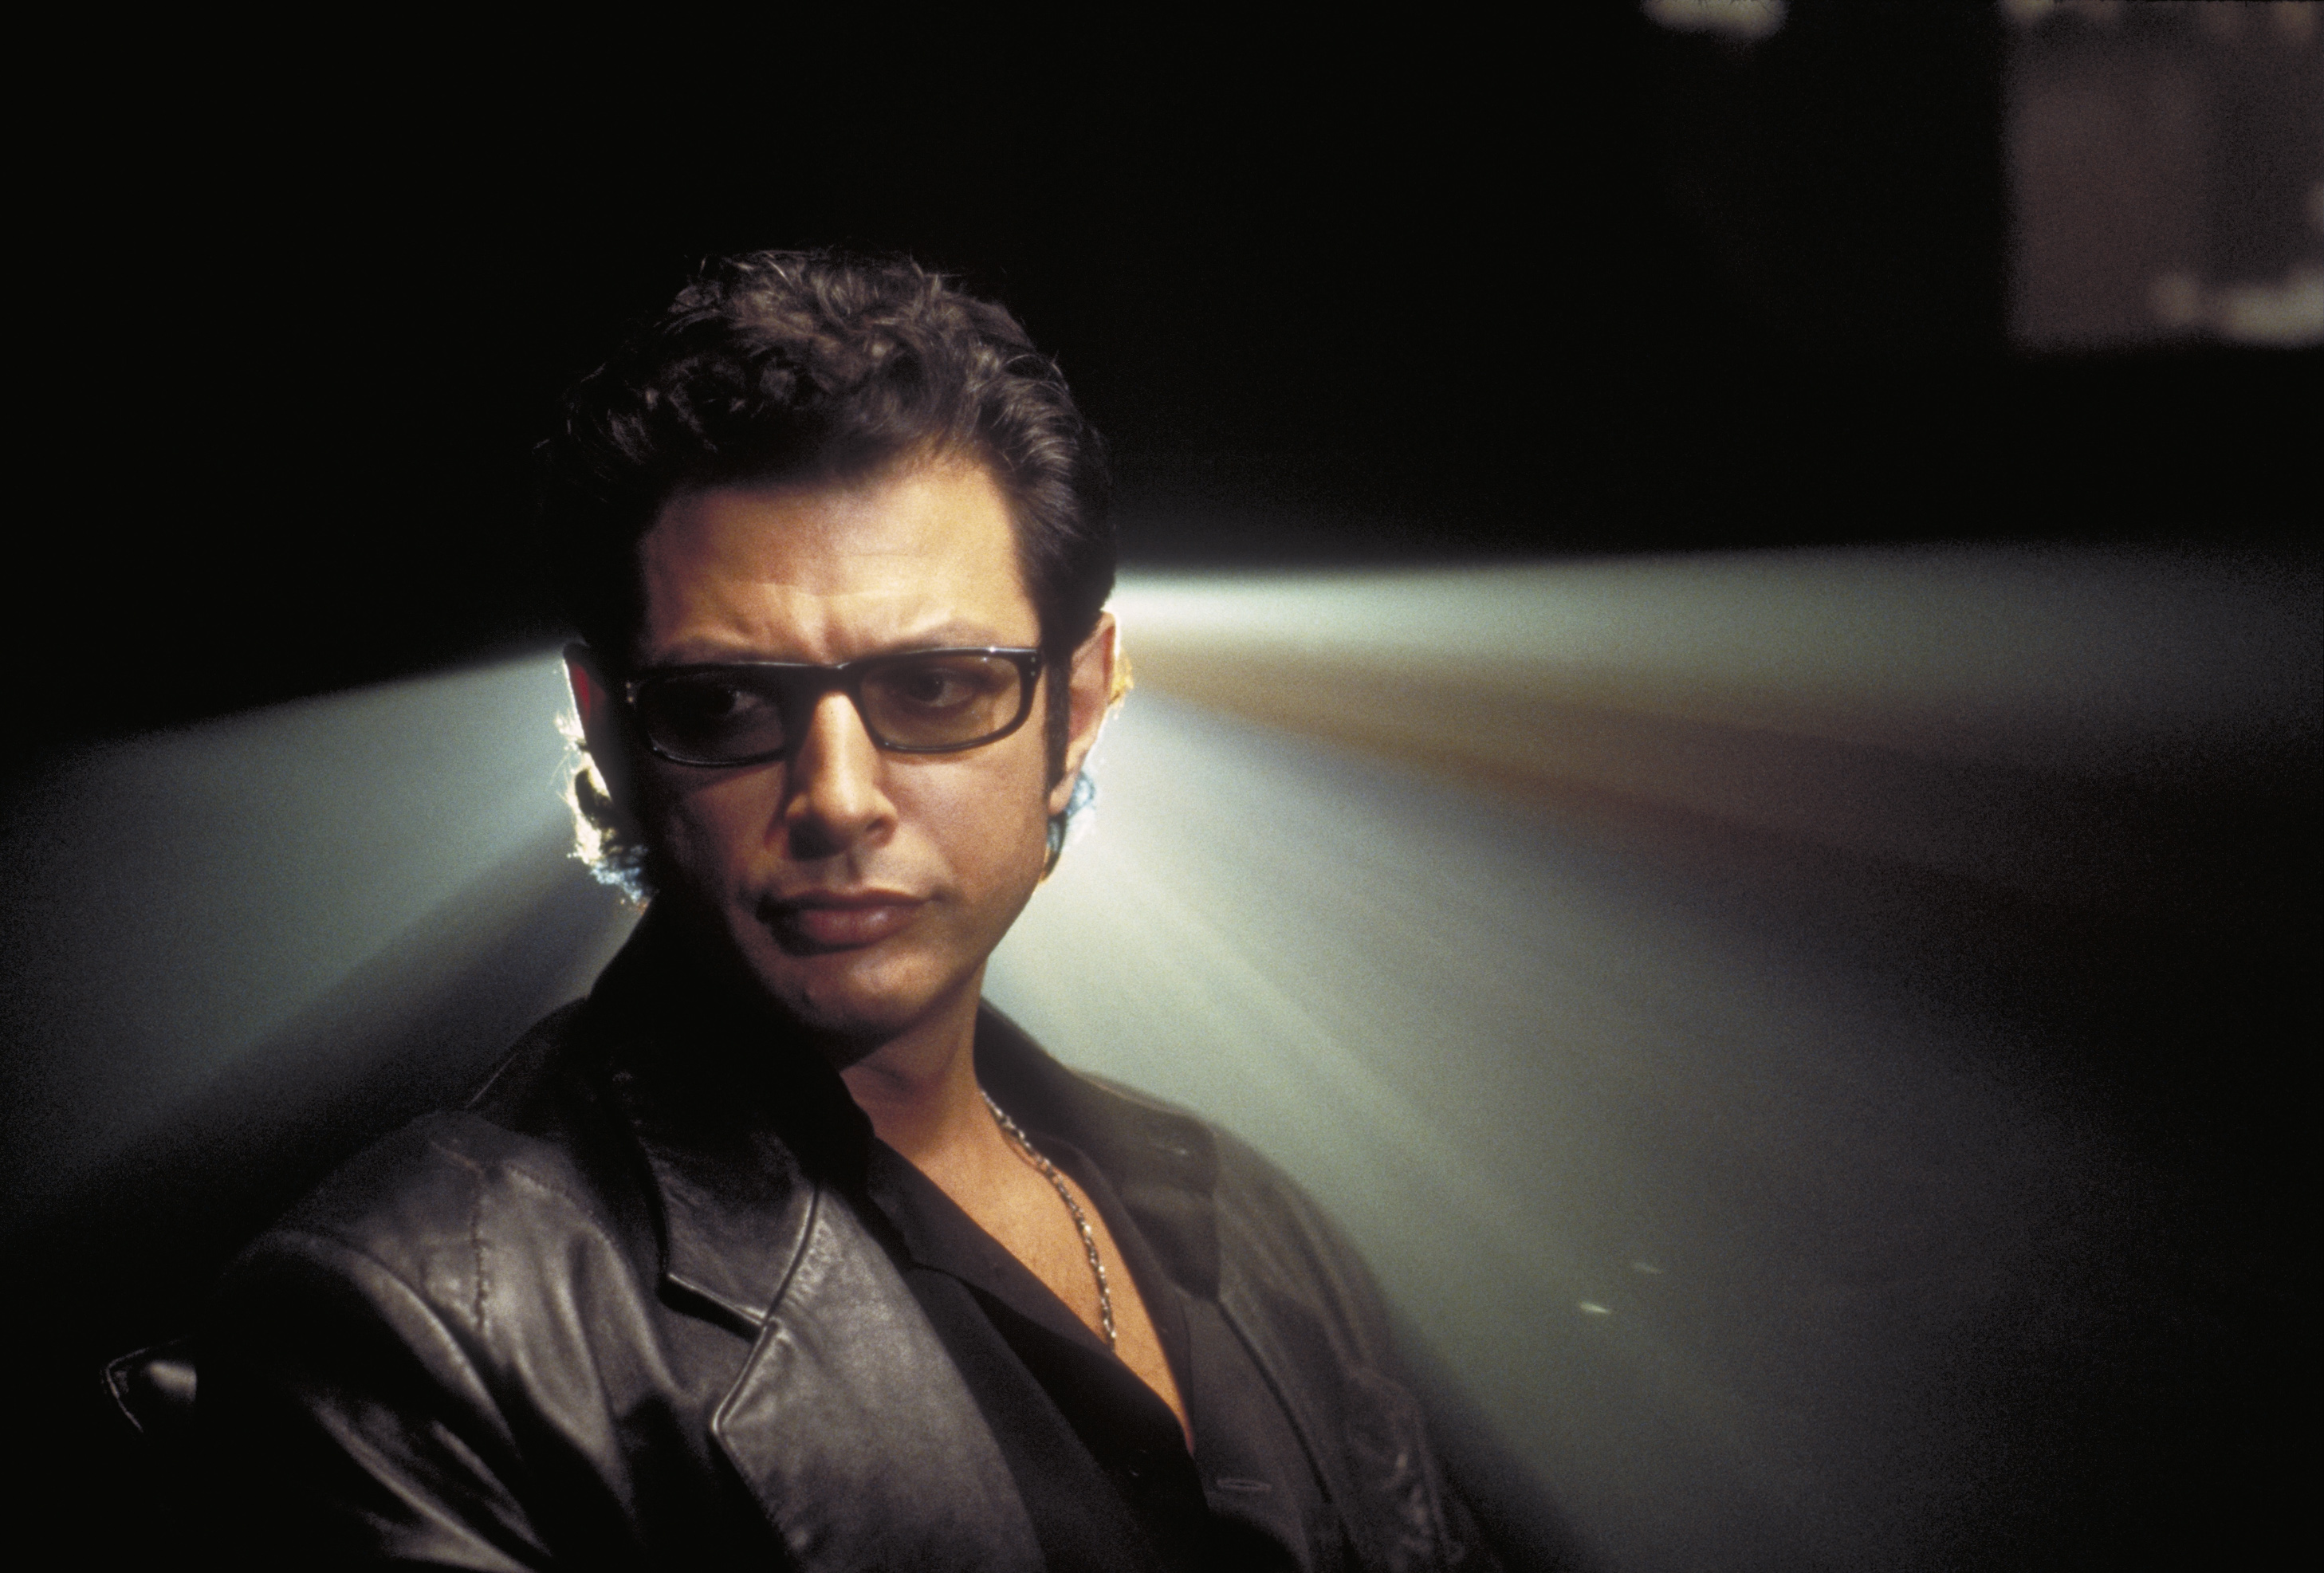 American actor Jeff Goldblum as Dr. Ian Malcolm in a scene from the film 'Jurassic Park.'